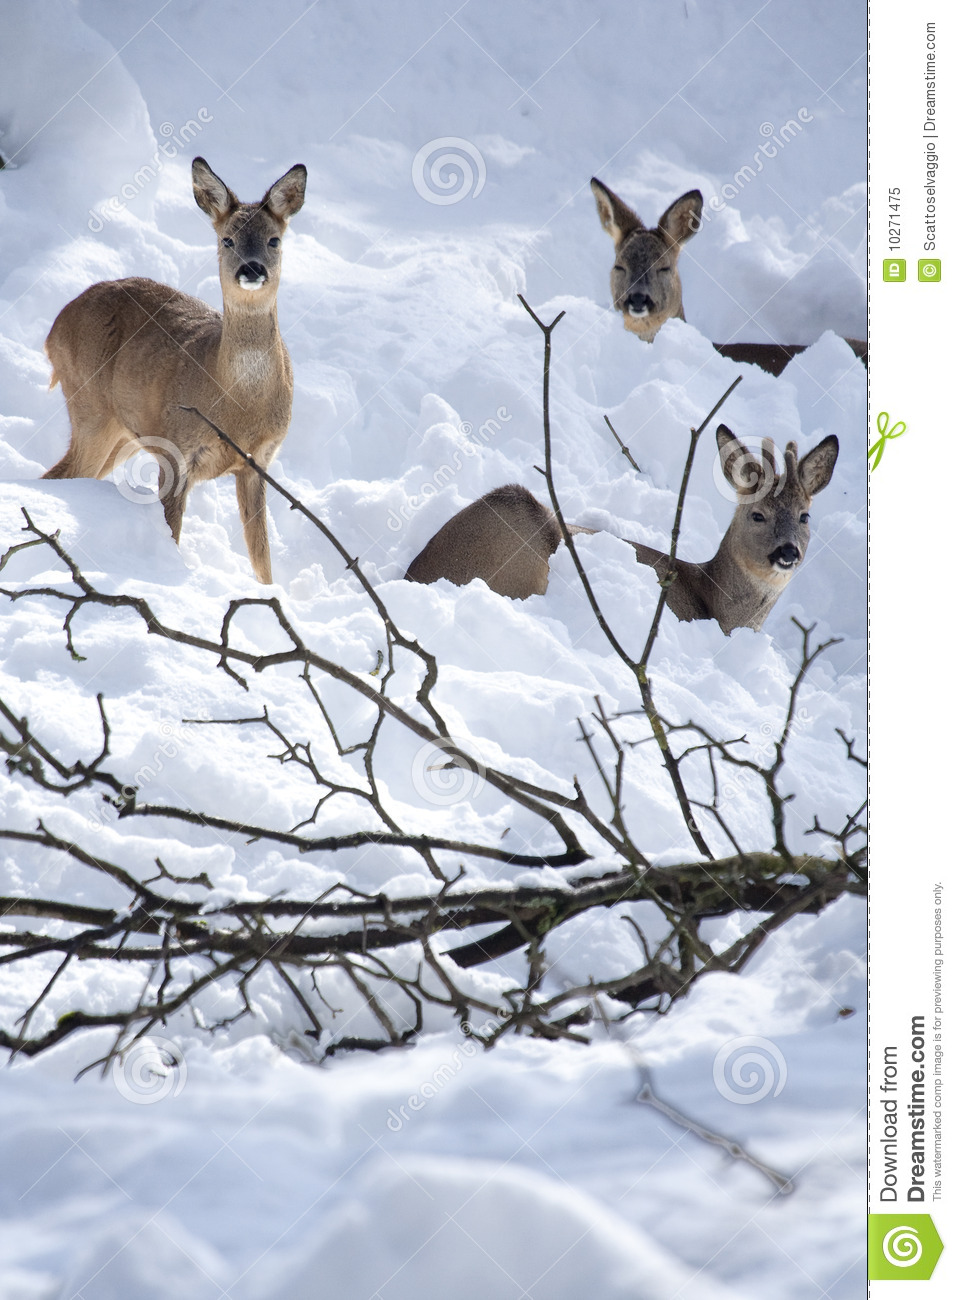 Three Roe Deers (Capreolus capreolus) in the snow, one male, two females.